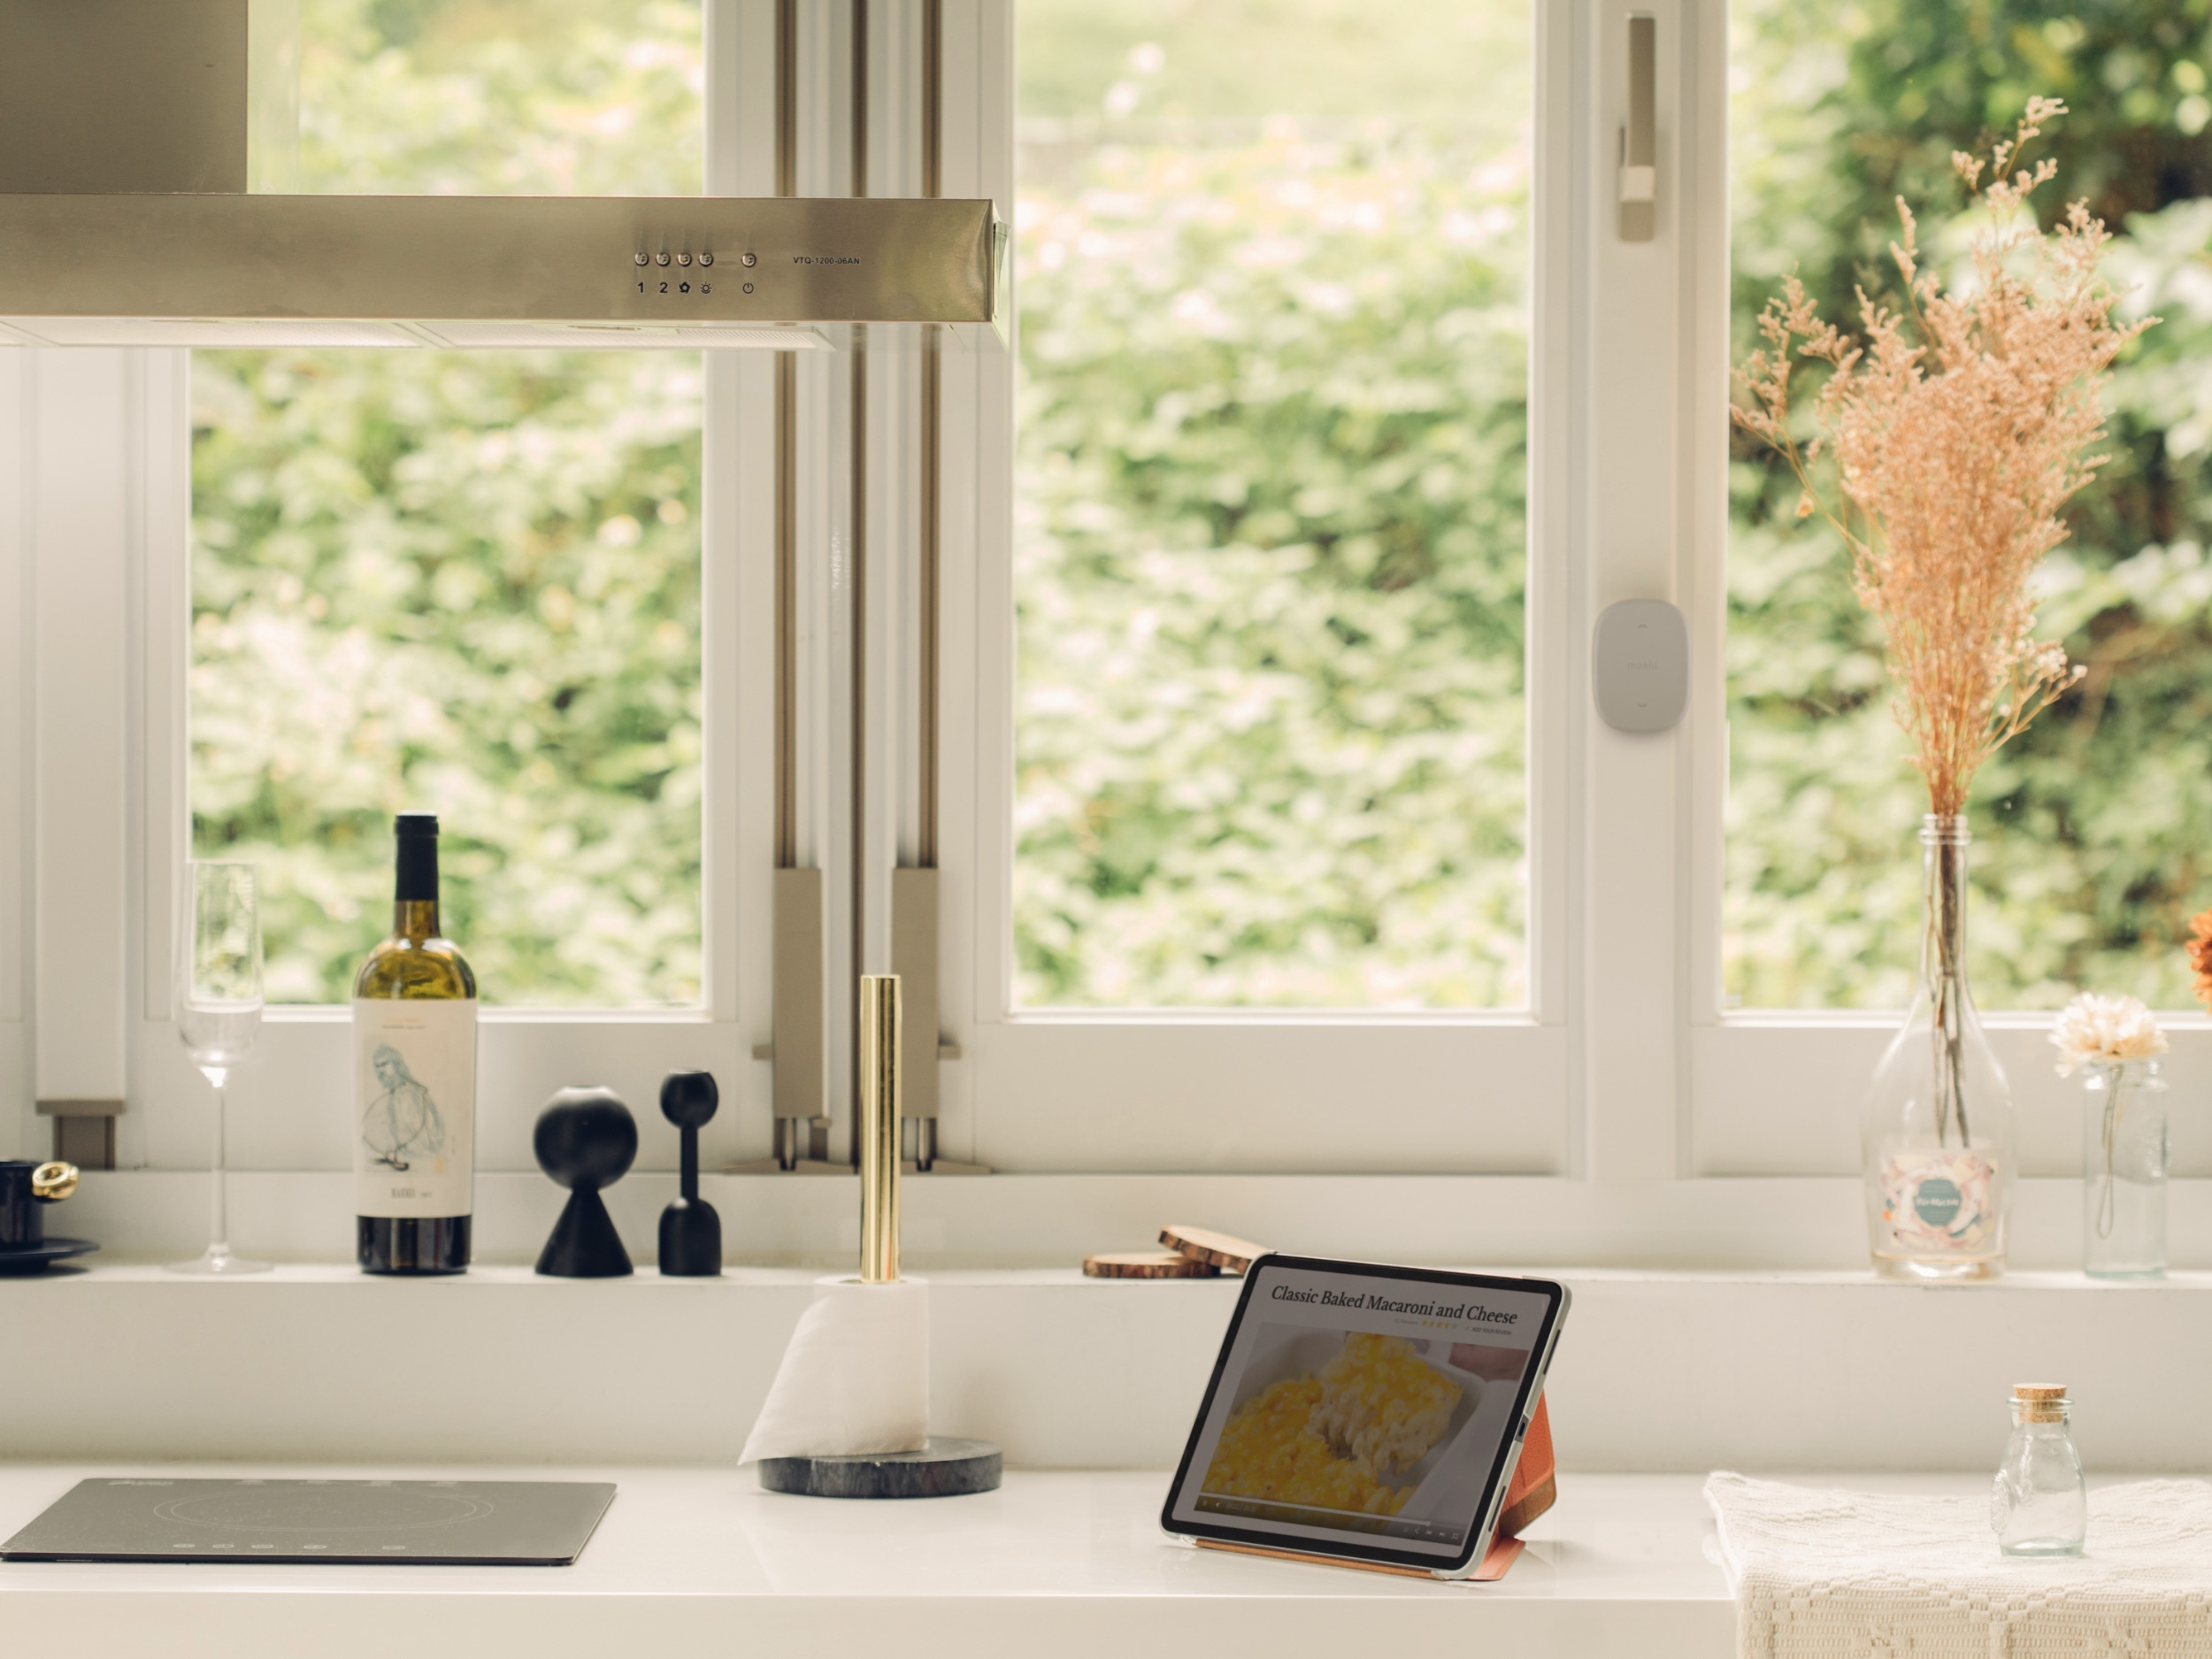 Modern western style kitchen with an iPad standing in landscape mode on the counter